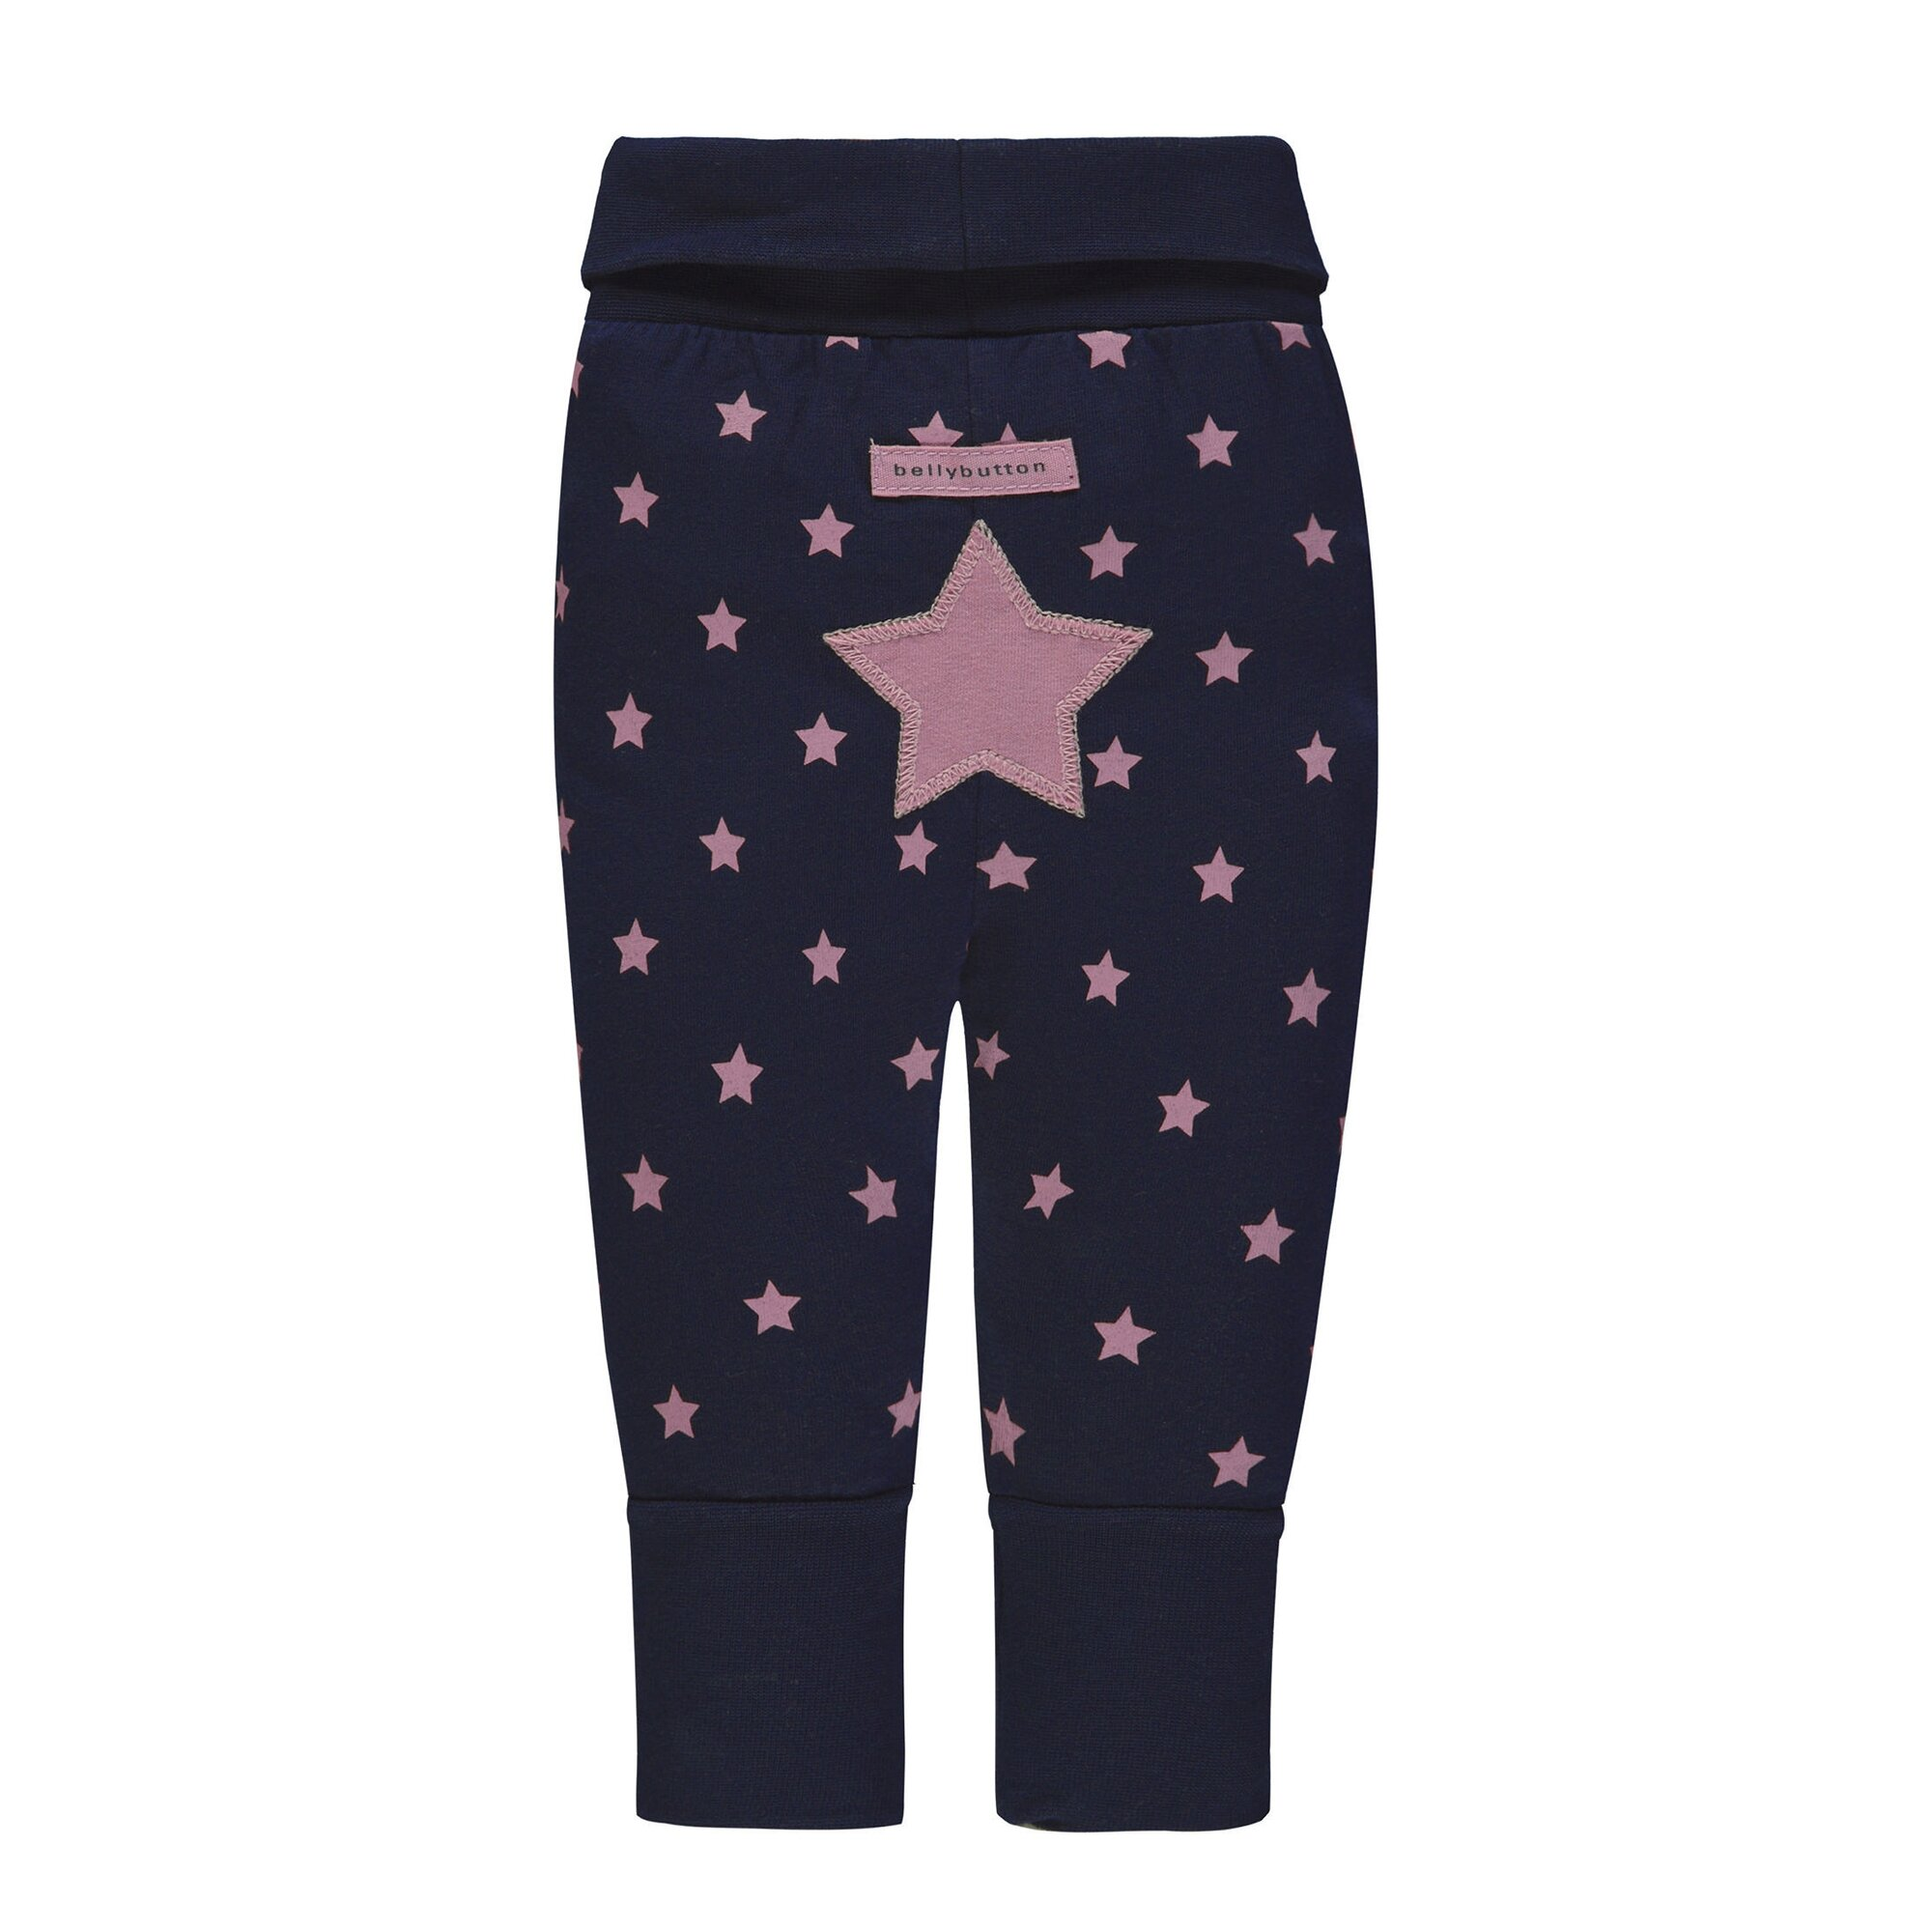 bellybutton-leggings-hinten-gro-er-stern